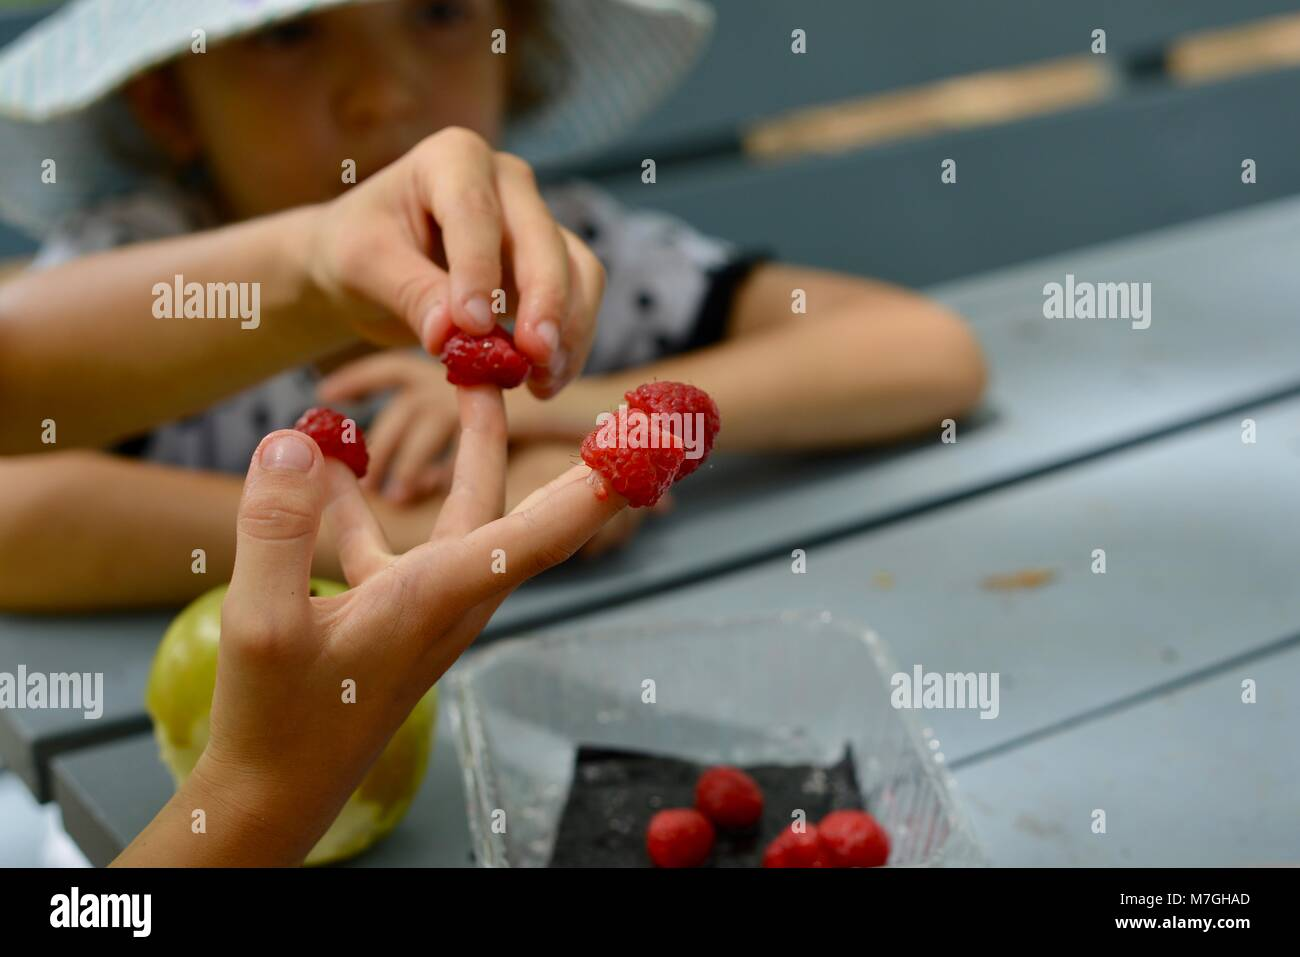 Kids eating raspberries, Apex Park, Riverway Drive, Condon QLD, Australia - Stock Image